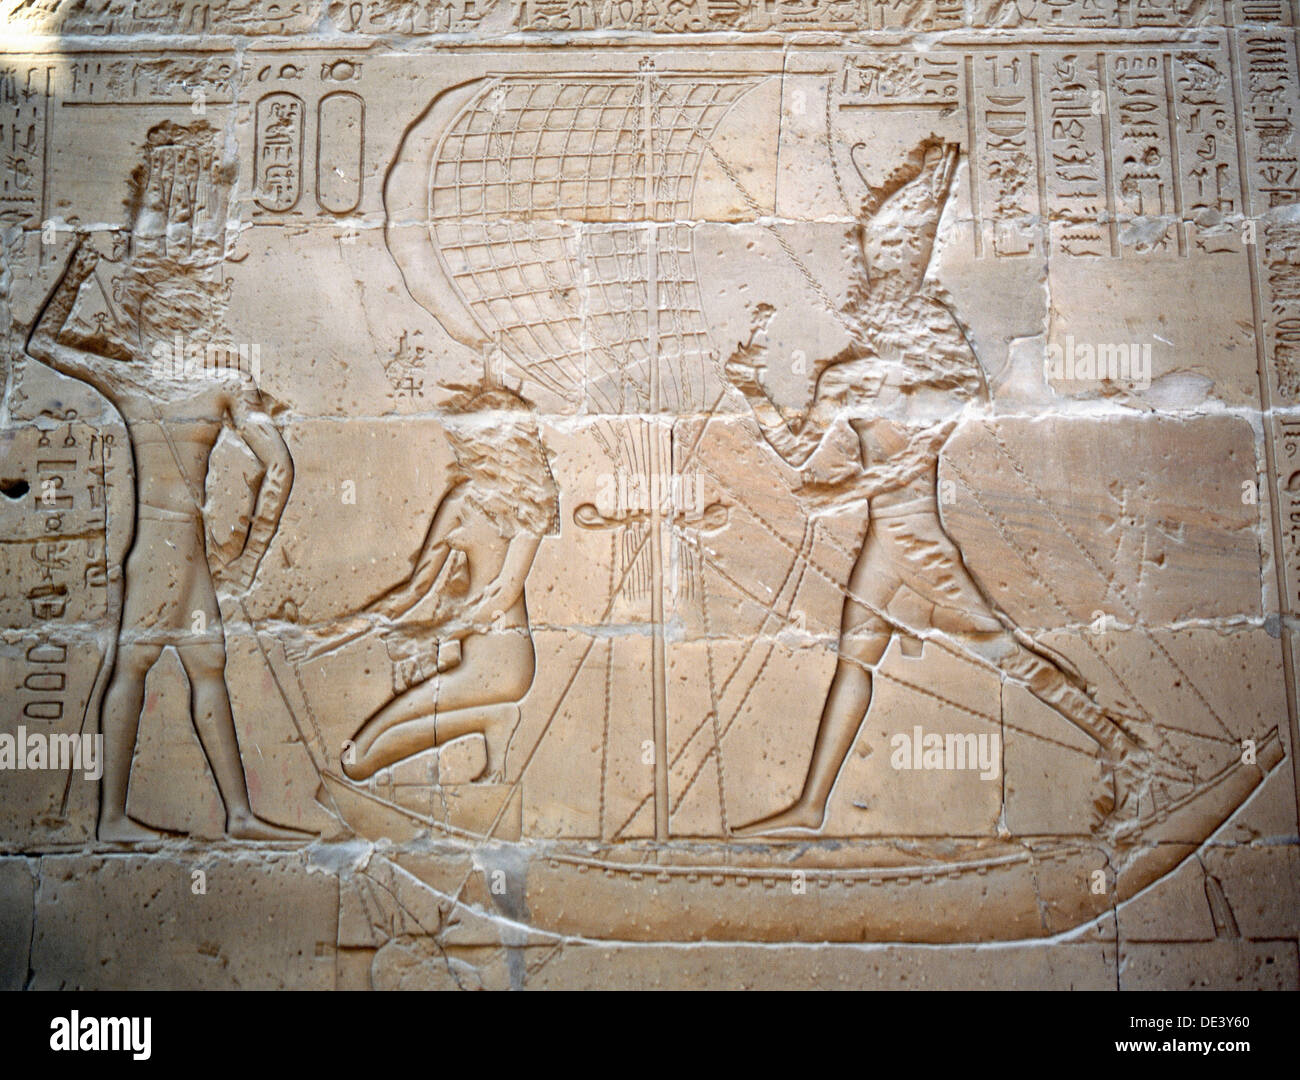 A relief at Edfu depicting the pharaoh in his sacred barque. - Stock Image